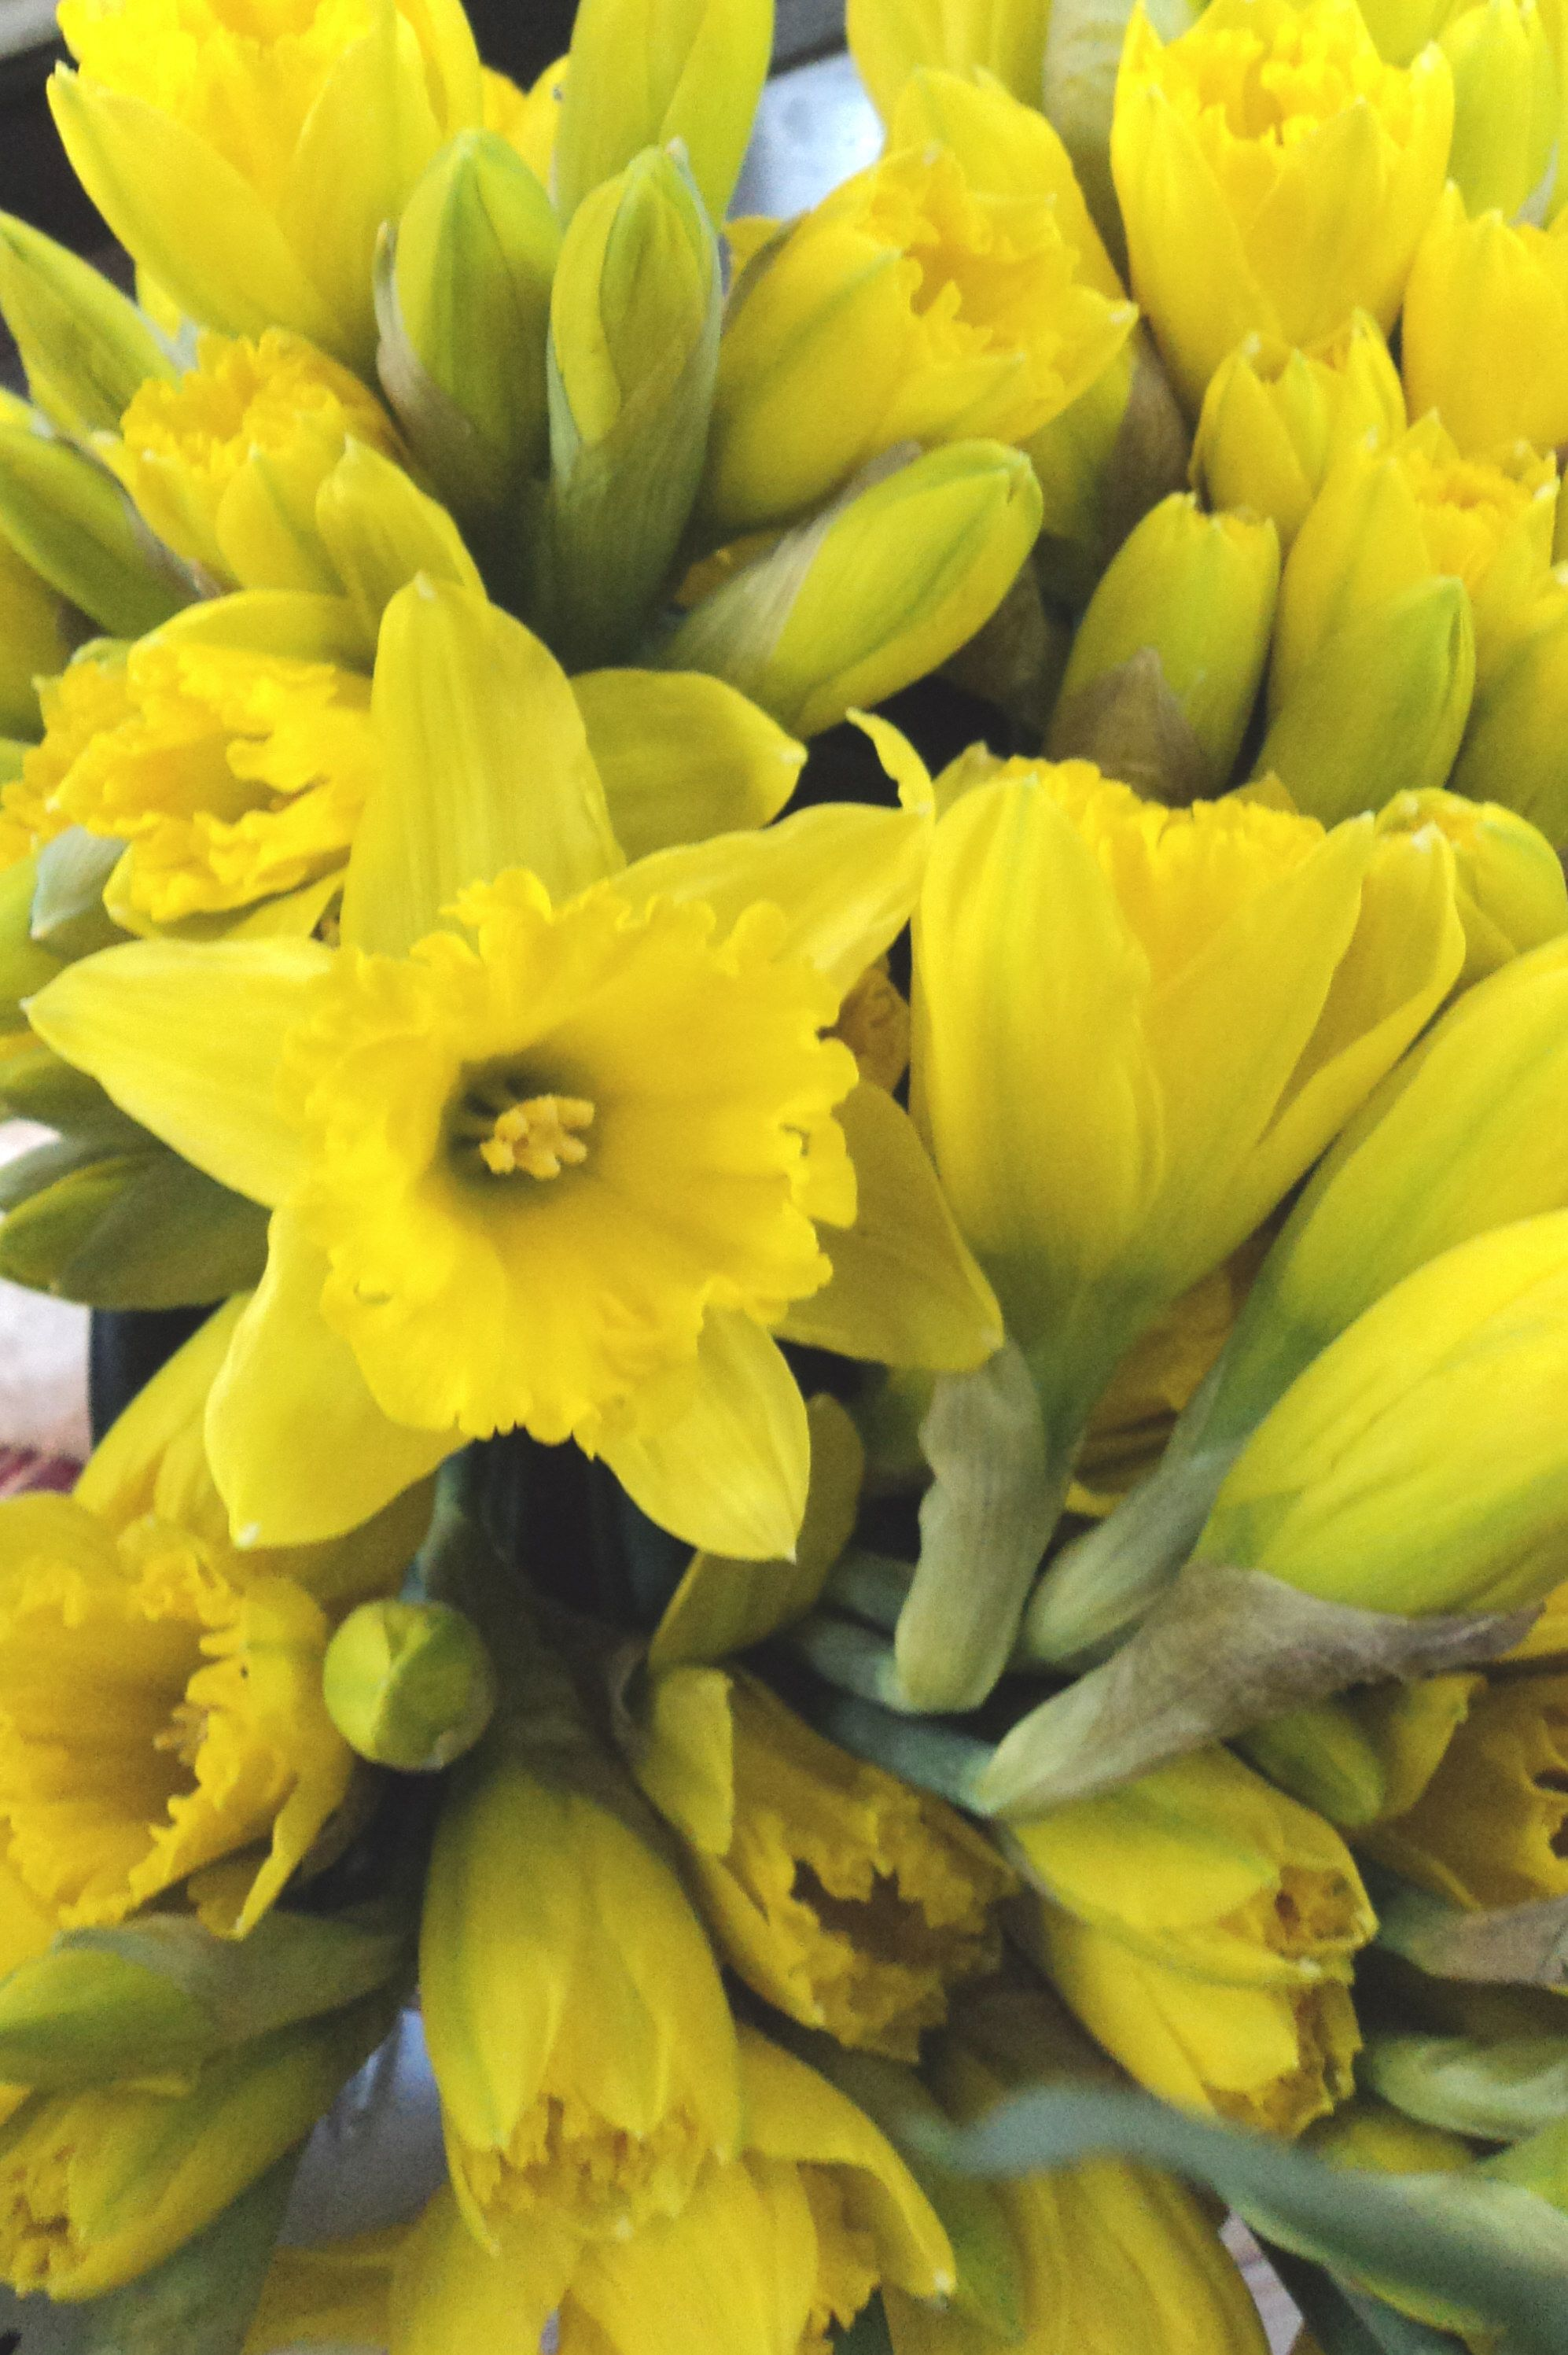 Daffodils Herald The Coming Of Spring With Their Trumpet Shaped